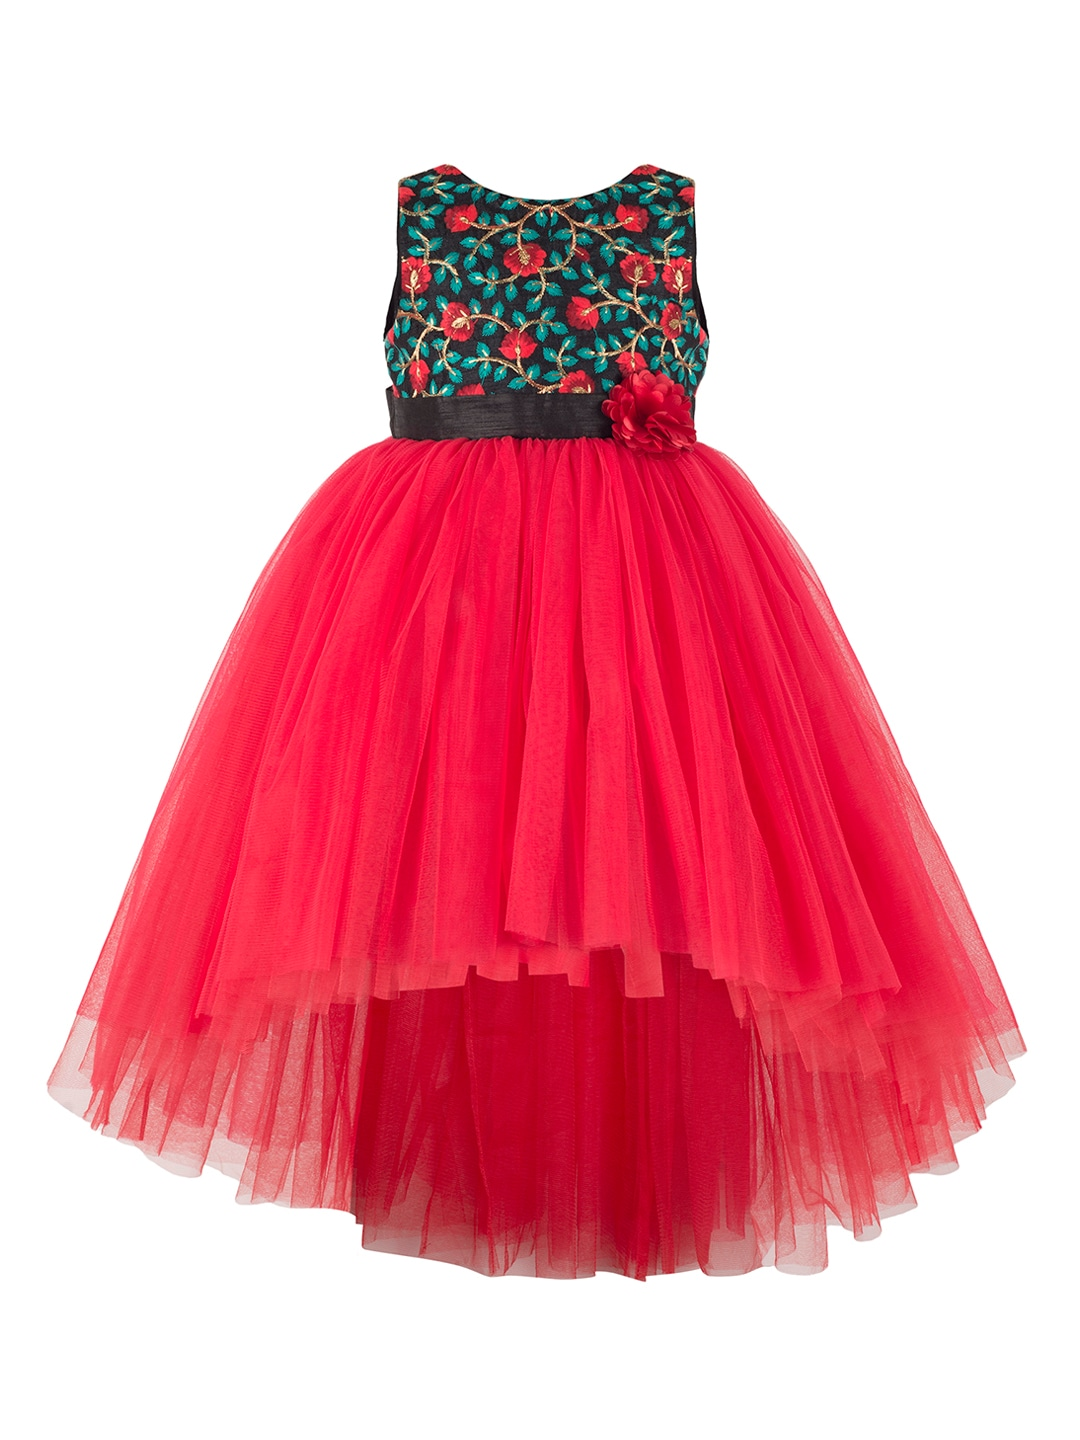 3290983ff1b Kids Party Dresses - Buy Partywear Dresses for Kids online